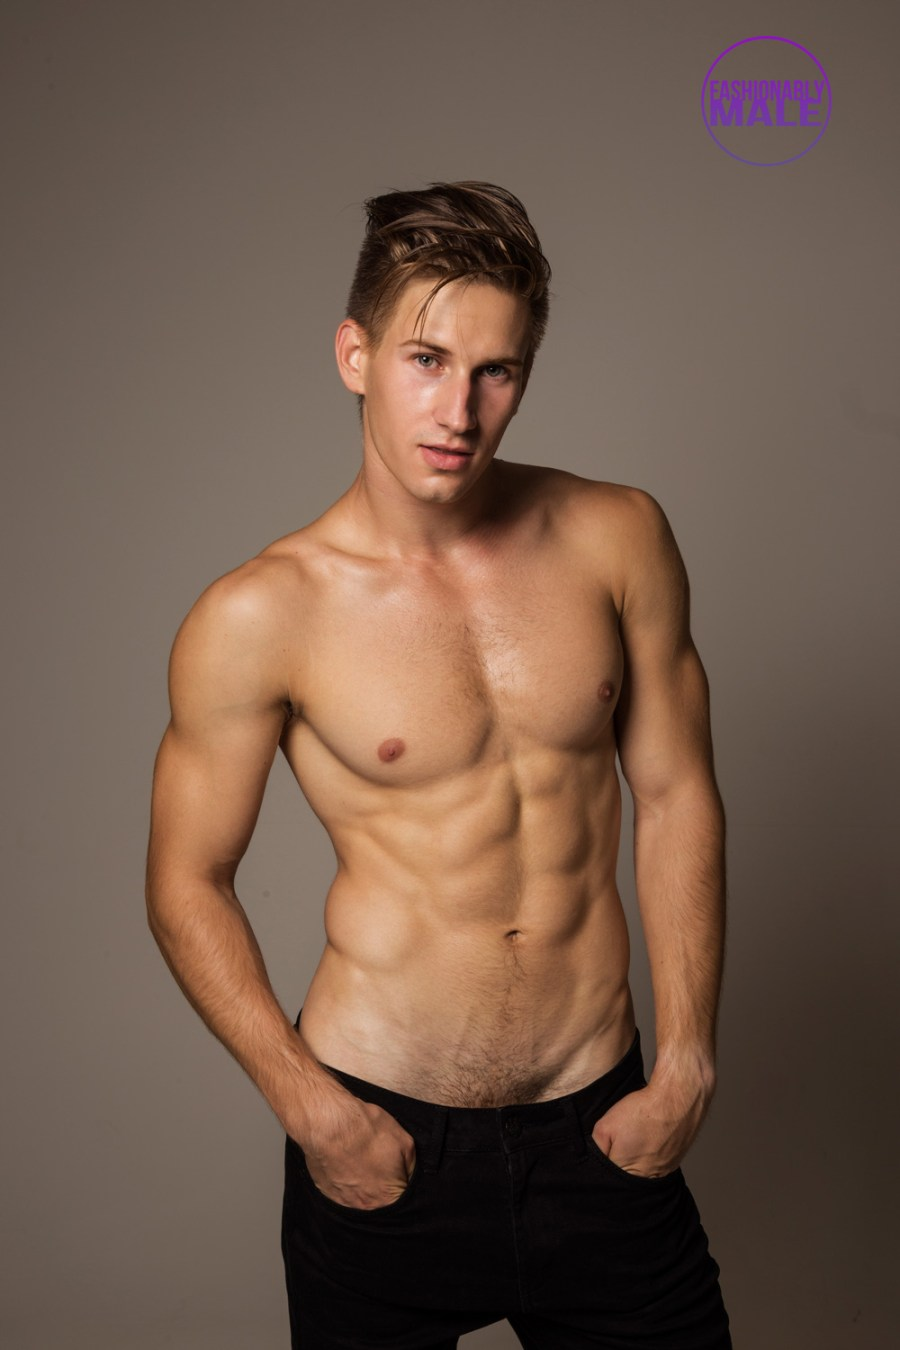 Pretty Face & Hot Body This is Stas by Victor Lluncor